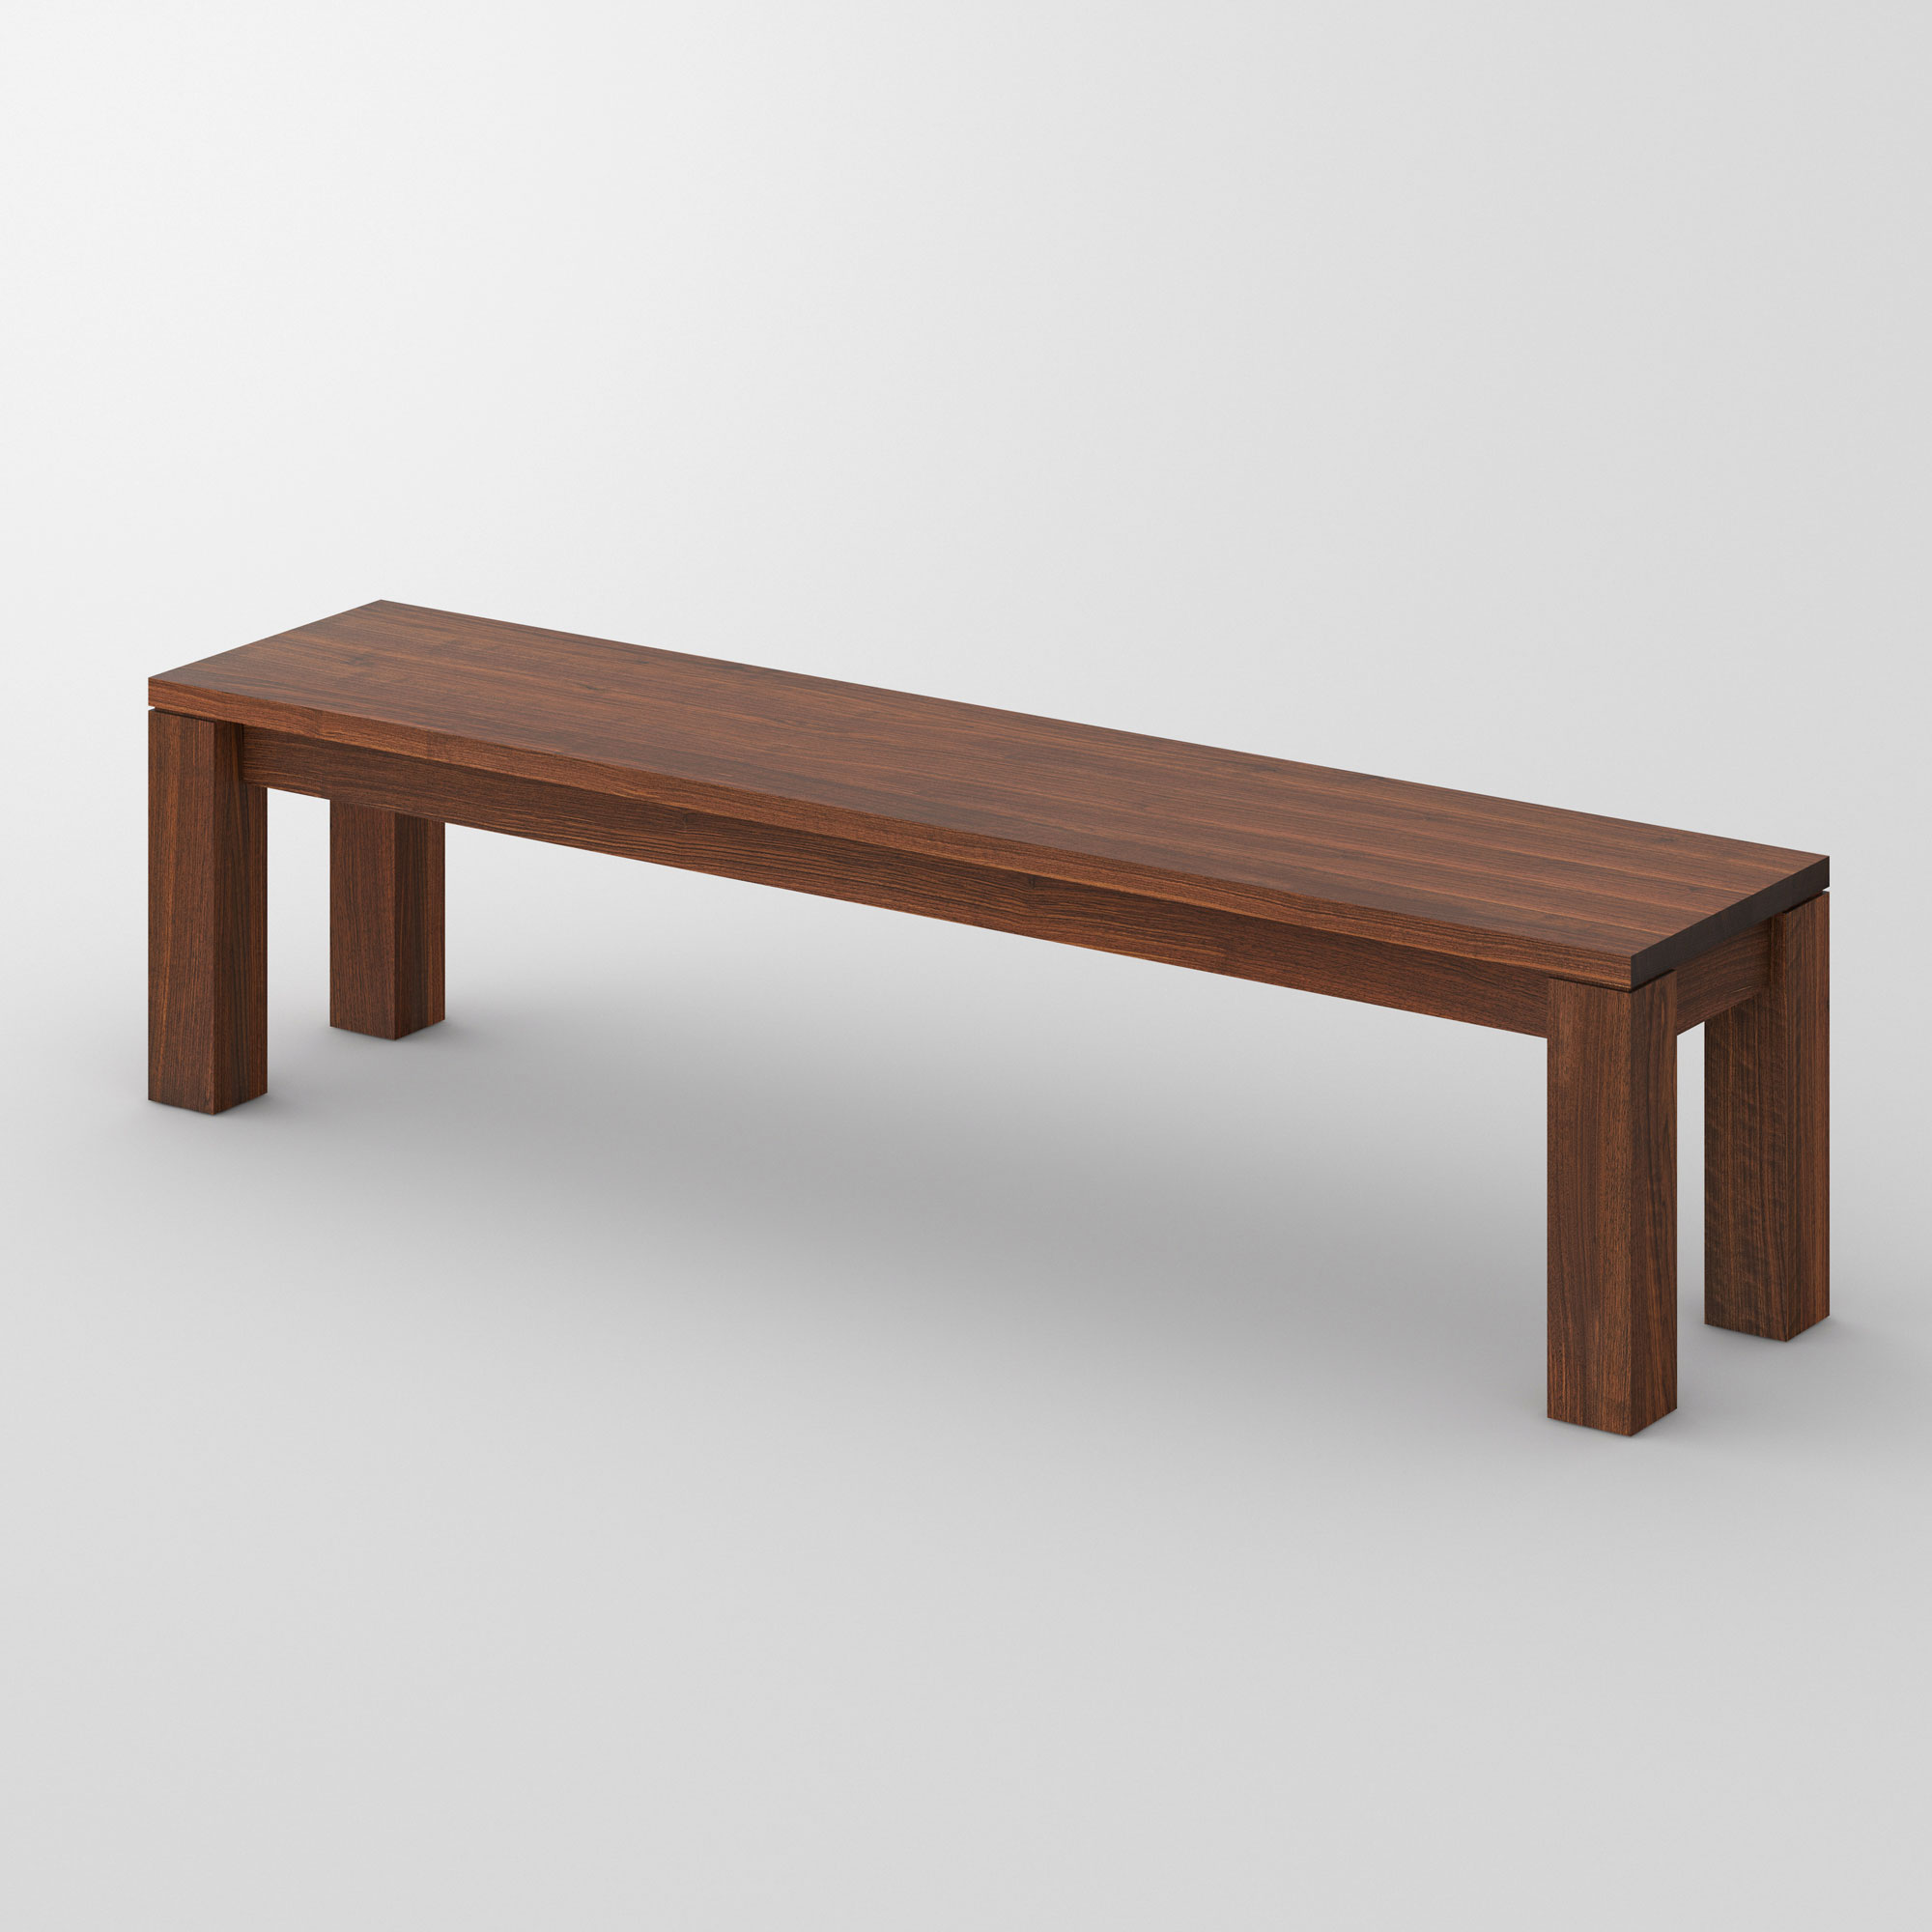 Wood Bench Rustic LIVING cam1 custom made in solid wood by vitamin design